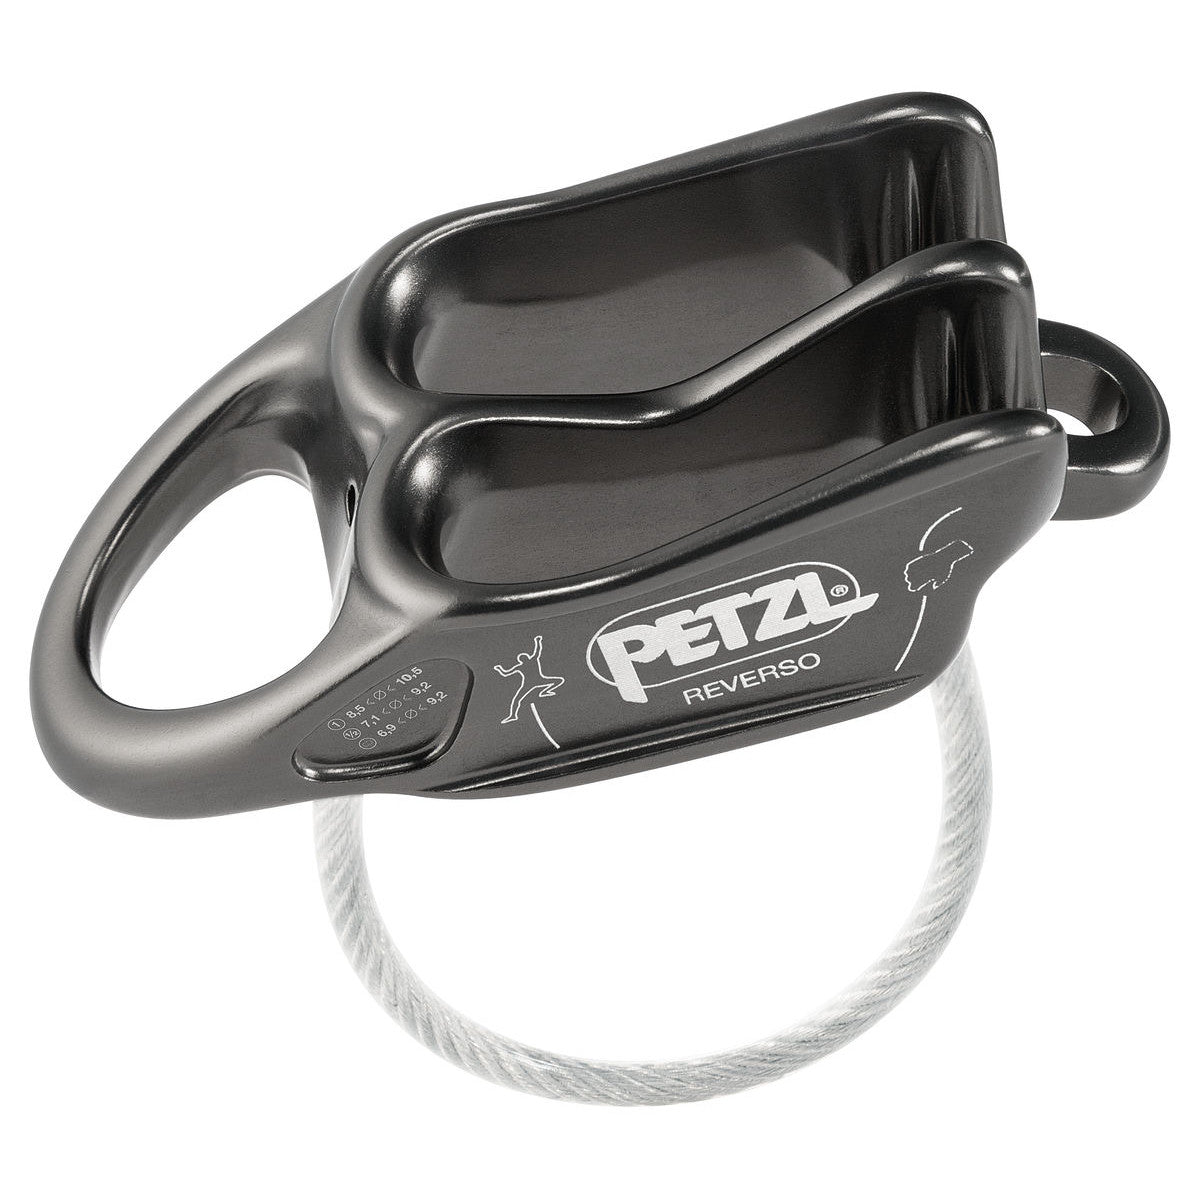 Petzl Reverso belay device, side view shown in grey colour in Grey